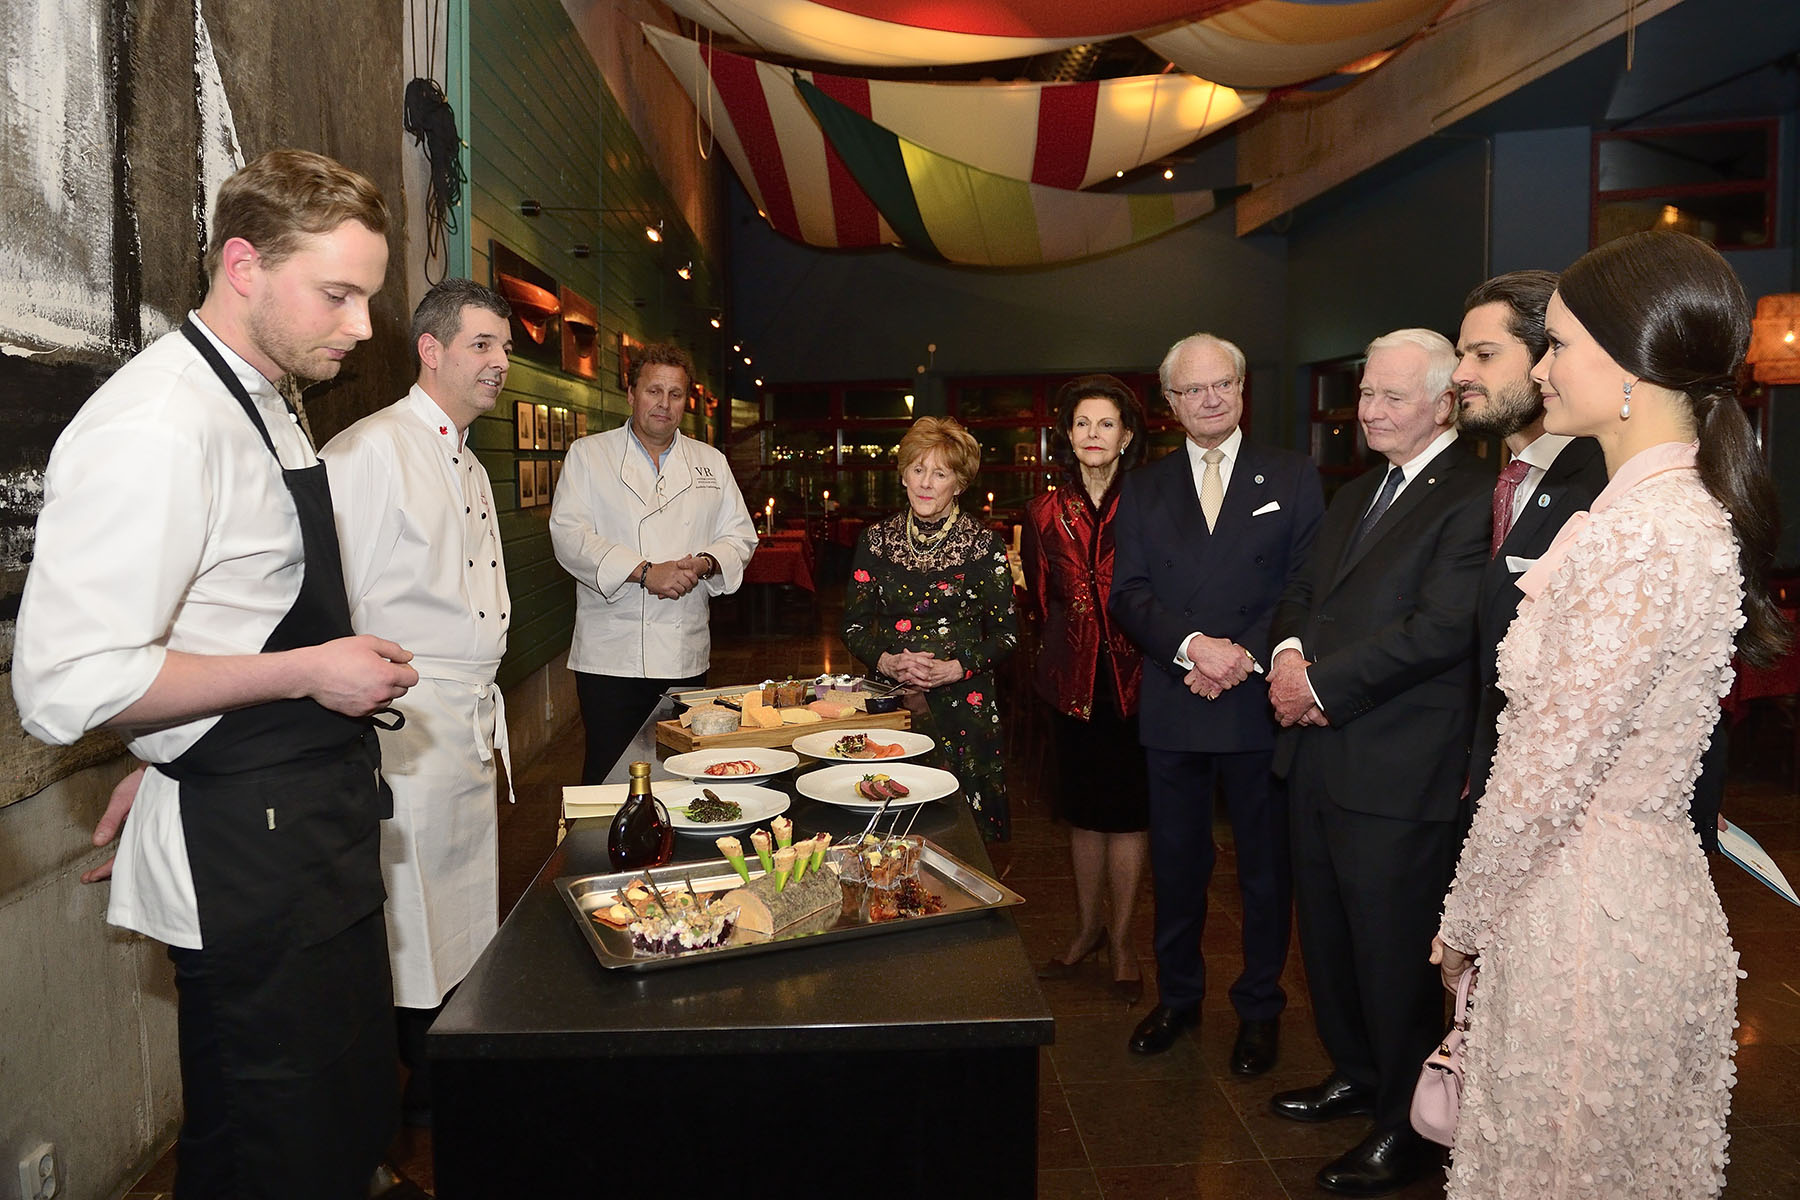 Their Excellencies, Their Majesties and Their Royal Highnesses Prince Carl Philip and Princess Sofia attended a presentation by Canadian and Swedish Chefs on their culinary creations.